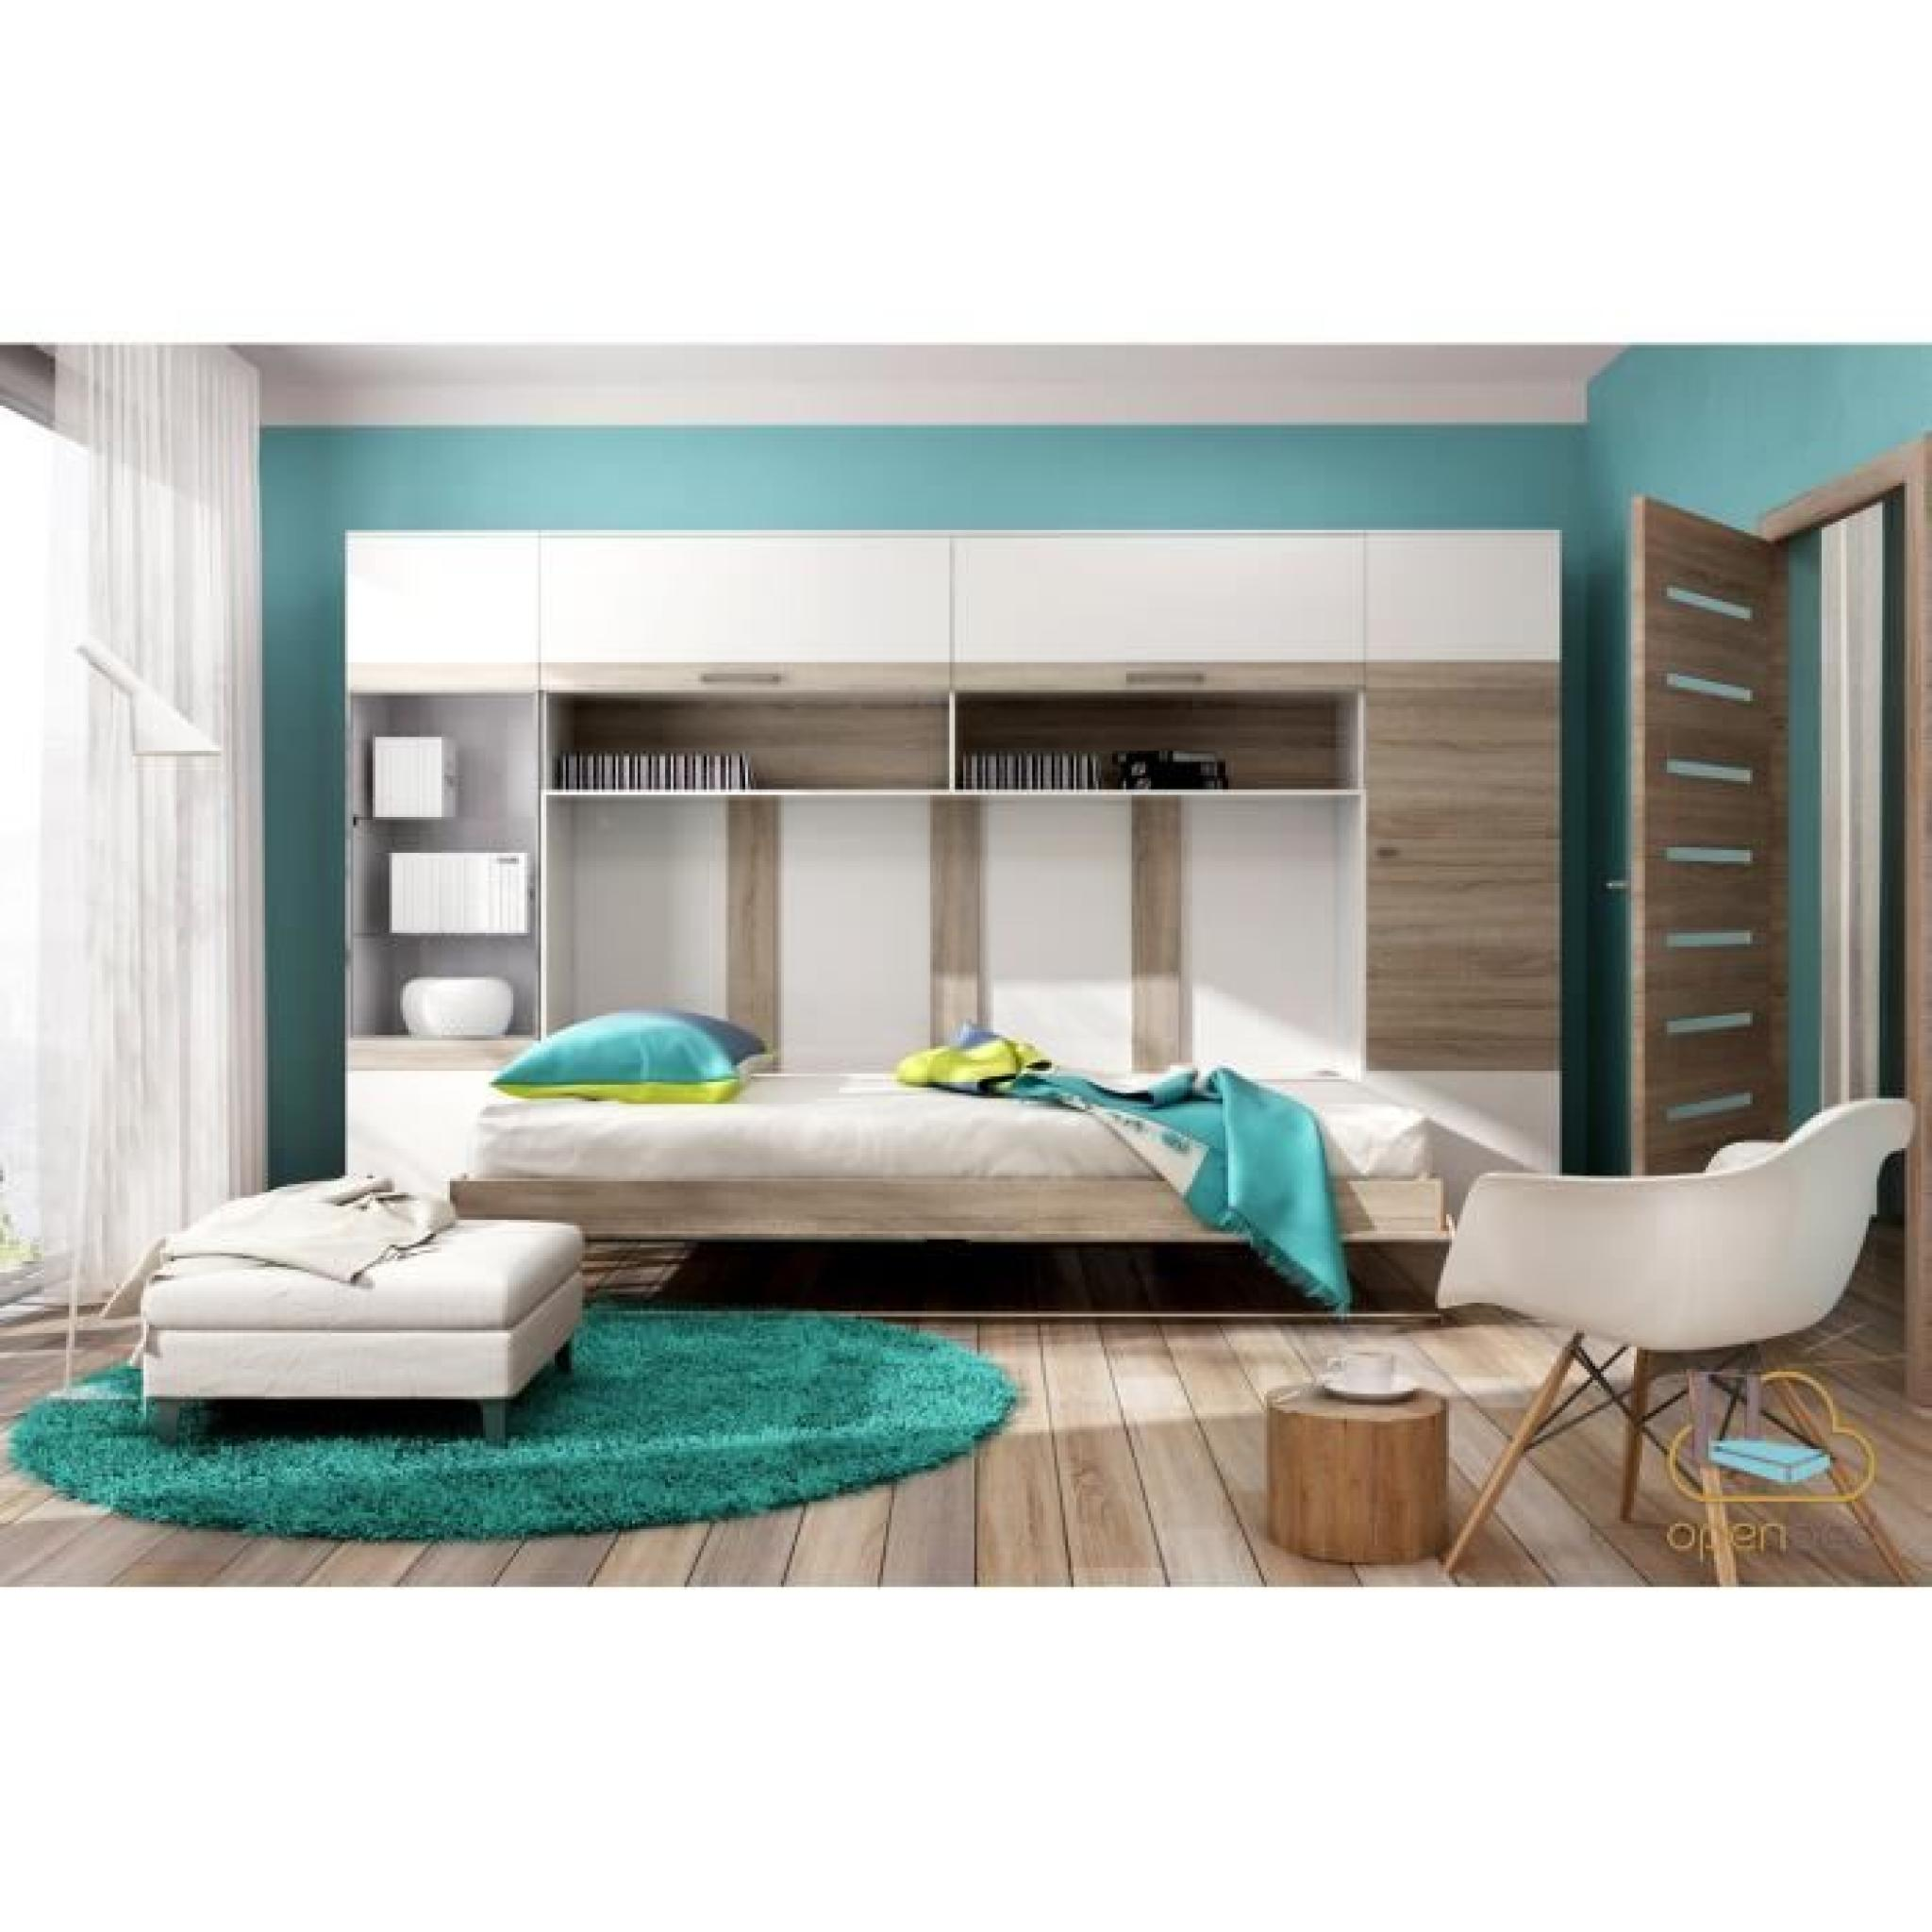 achat lit pas cher lit bebe transformable pas cher tour. Black Bedroom Furniture Sets. Home Design Ideas